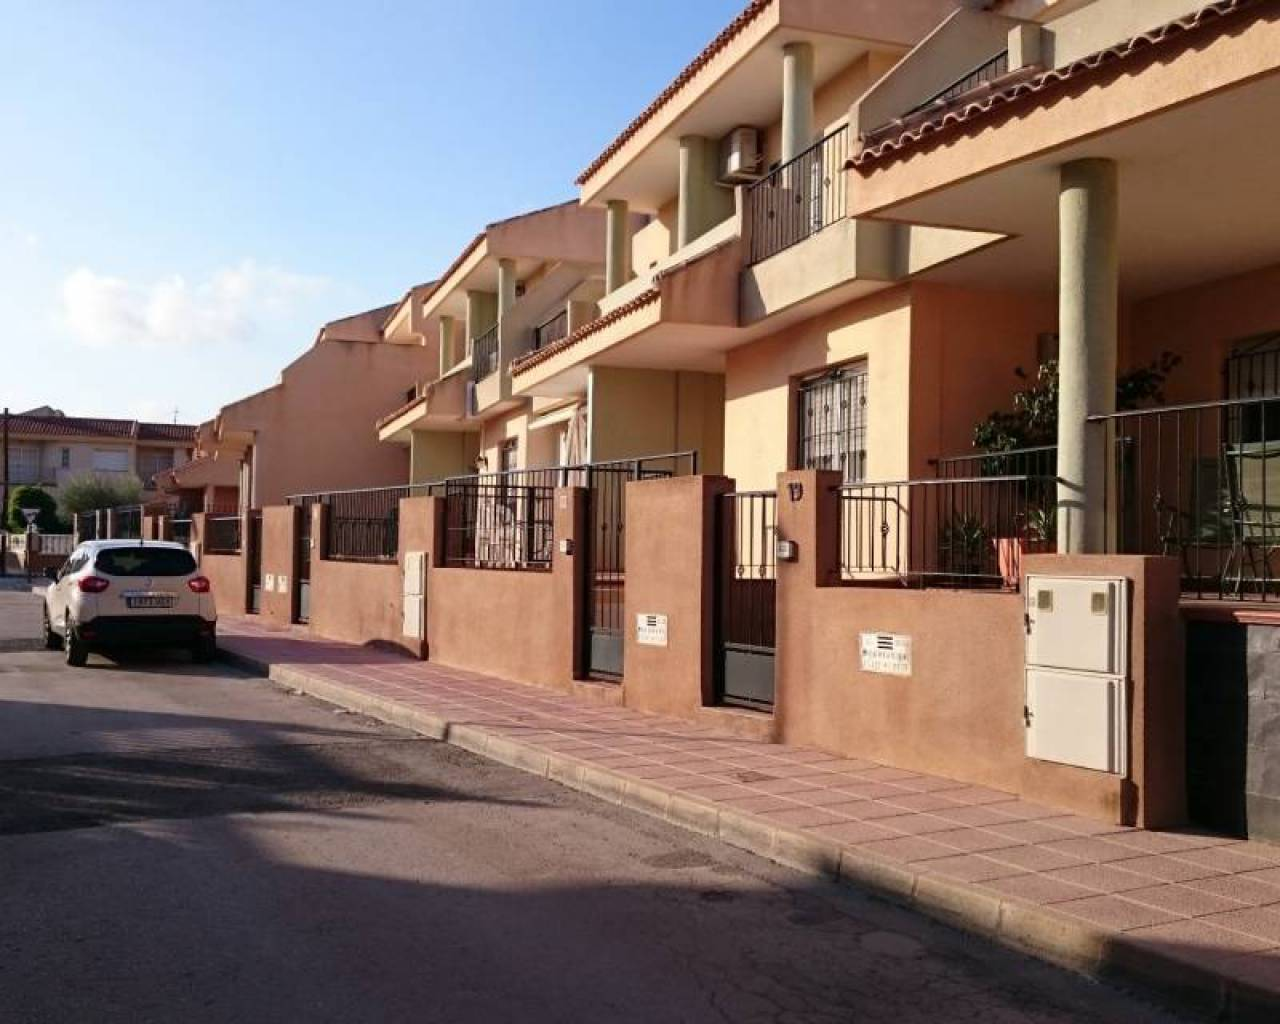 Townhouse - Wederverkoop - Torre Pacheco - Torre Pacheco